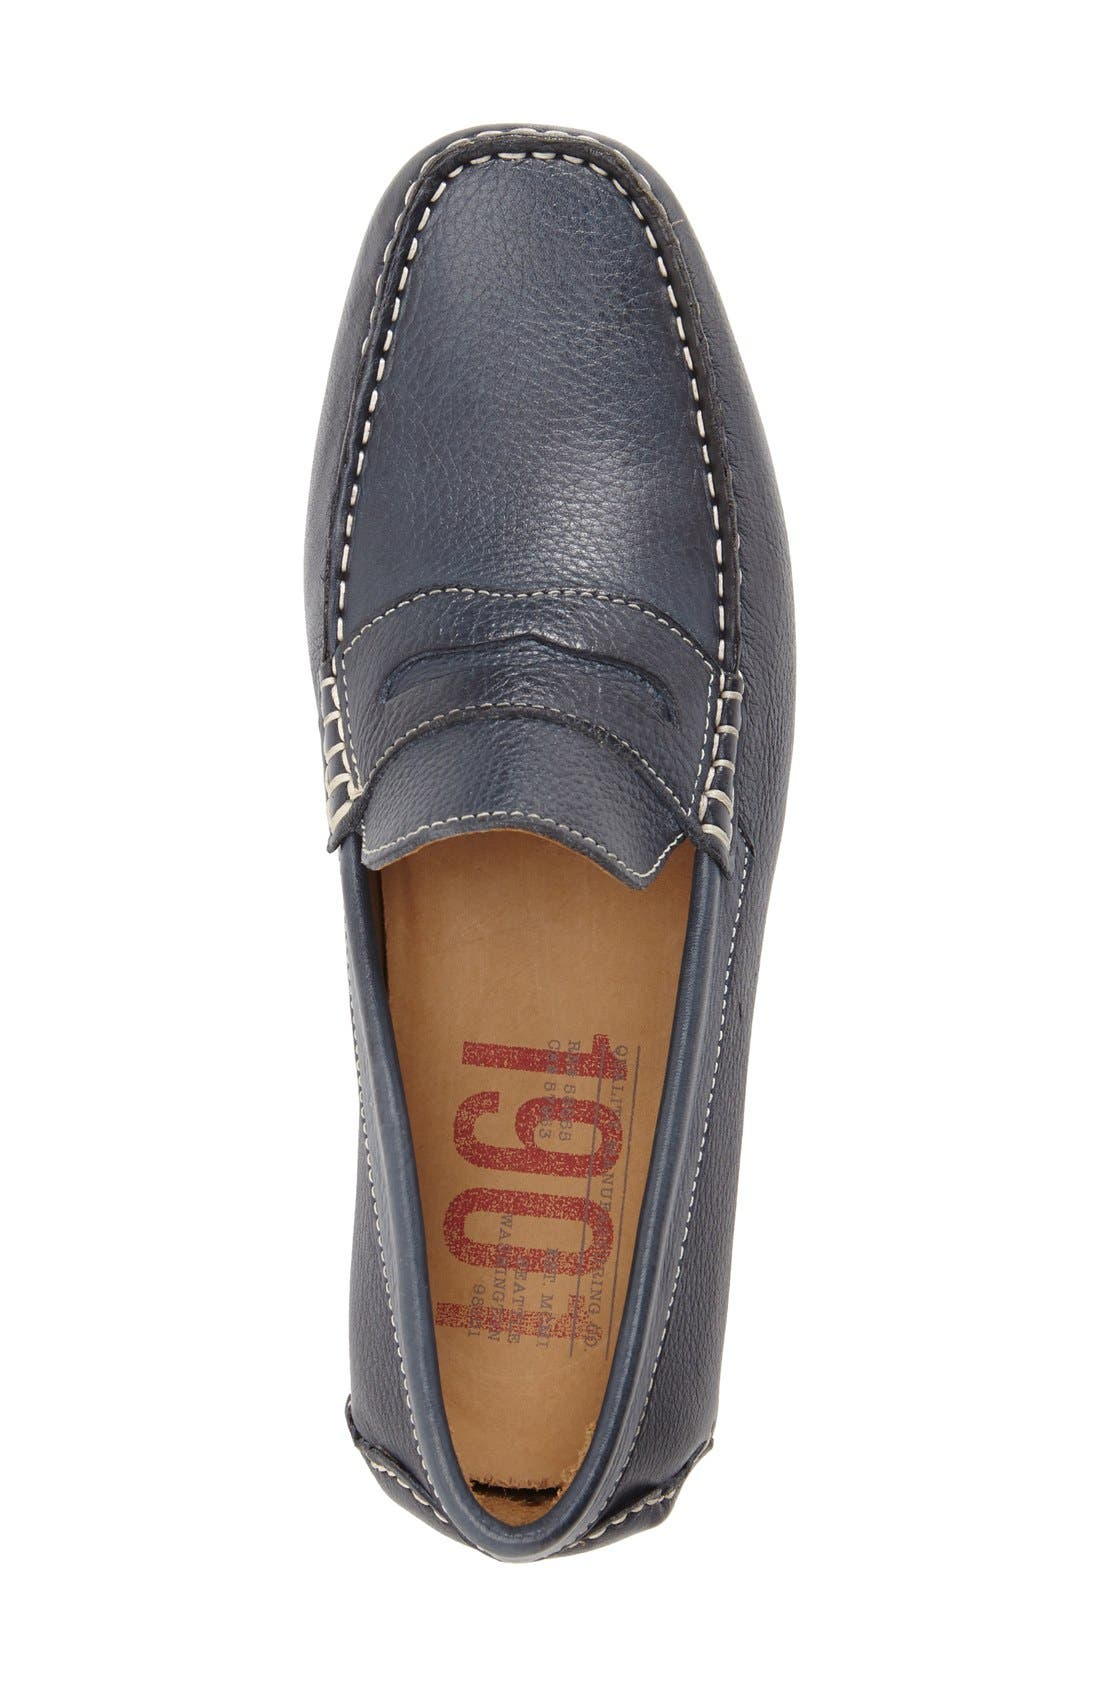 'Bermuda' Penny Loafer,                             Alternate thumbnail 3, color,                             MARINE LEATHER